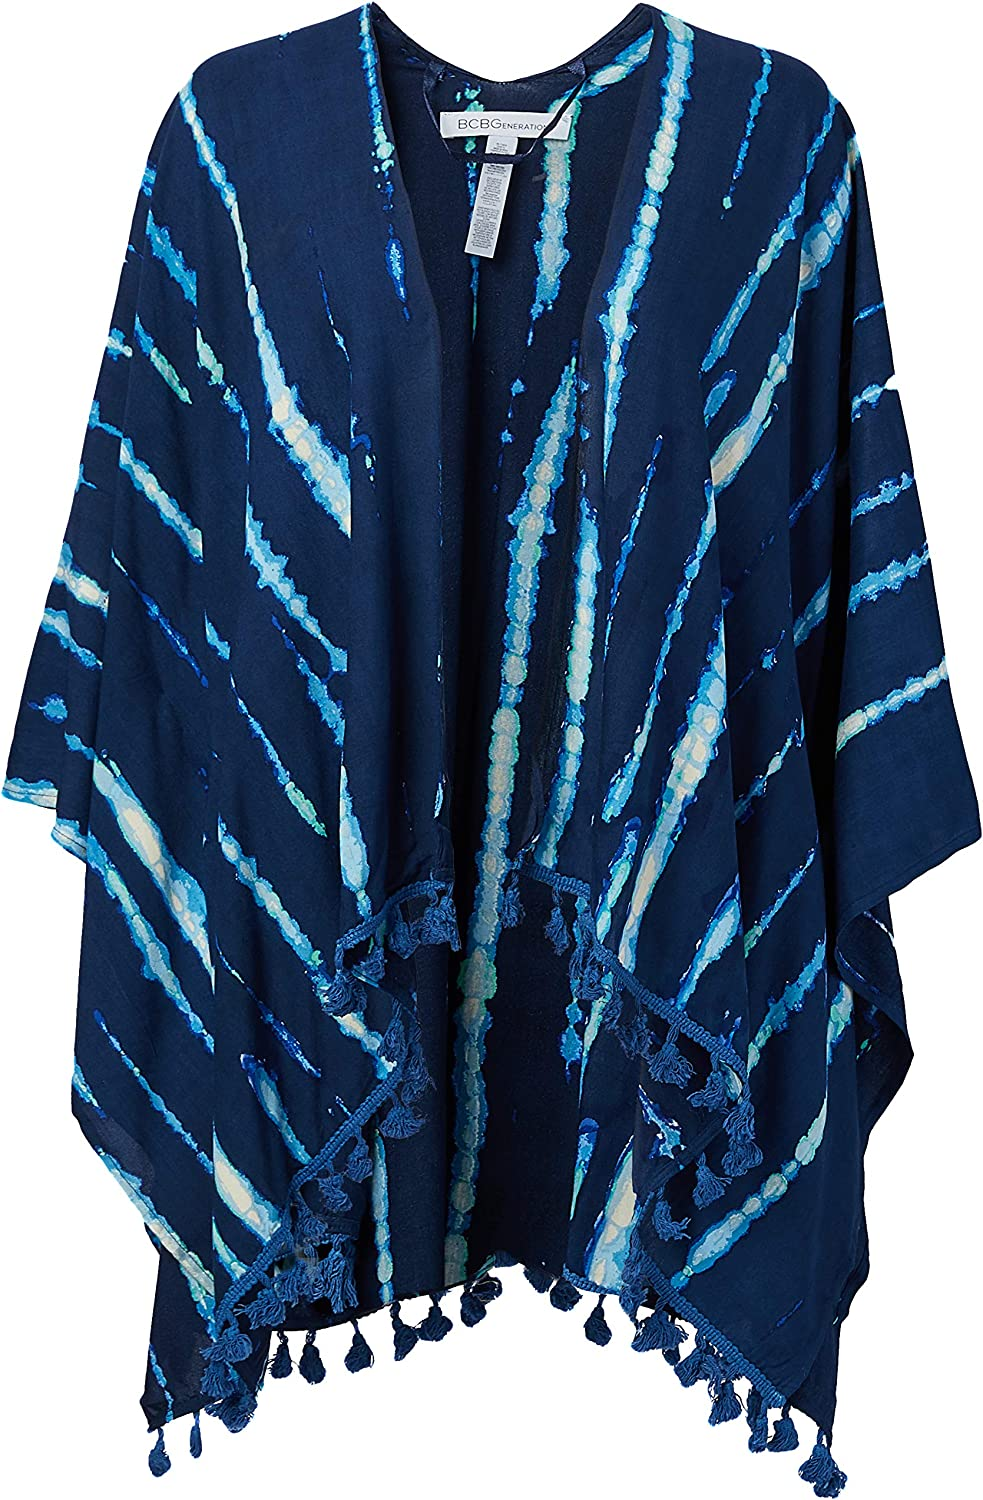 BCBGeneration Women's Tie Dye Tassel Topper, Blue, One Size